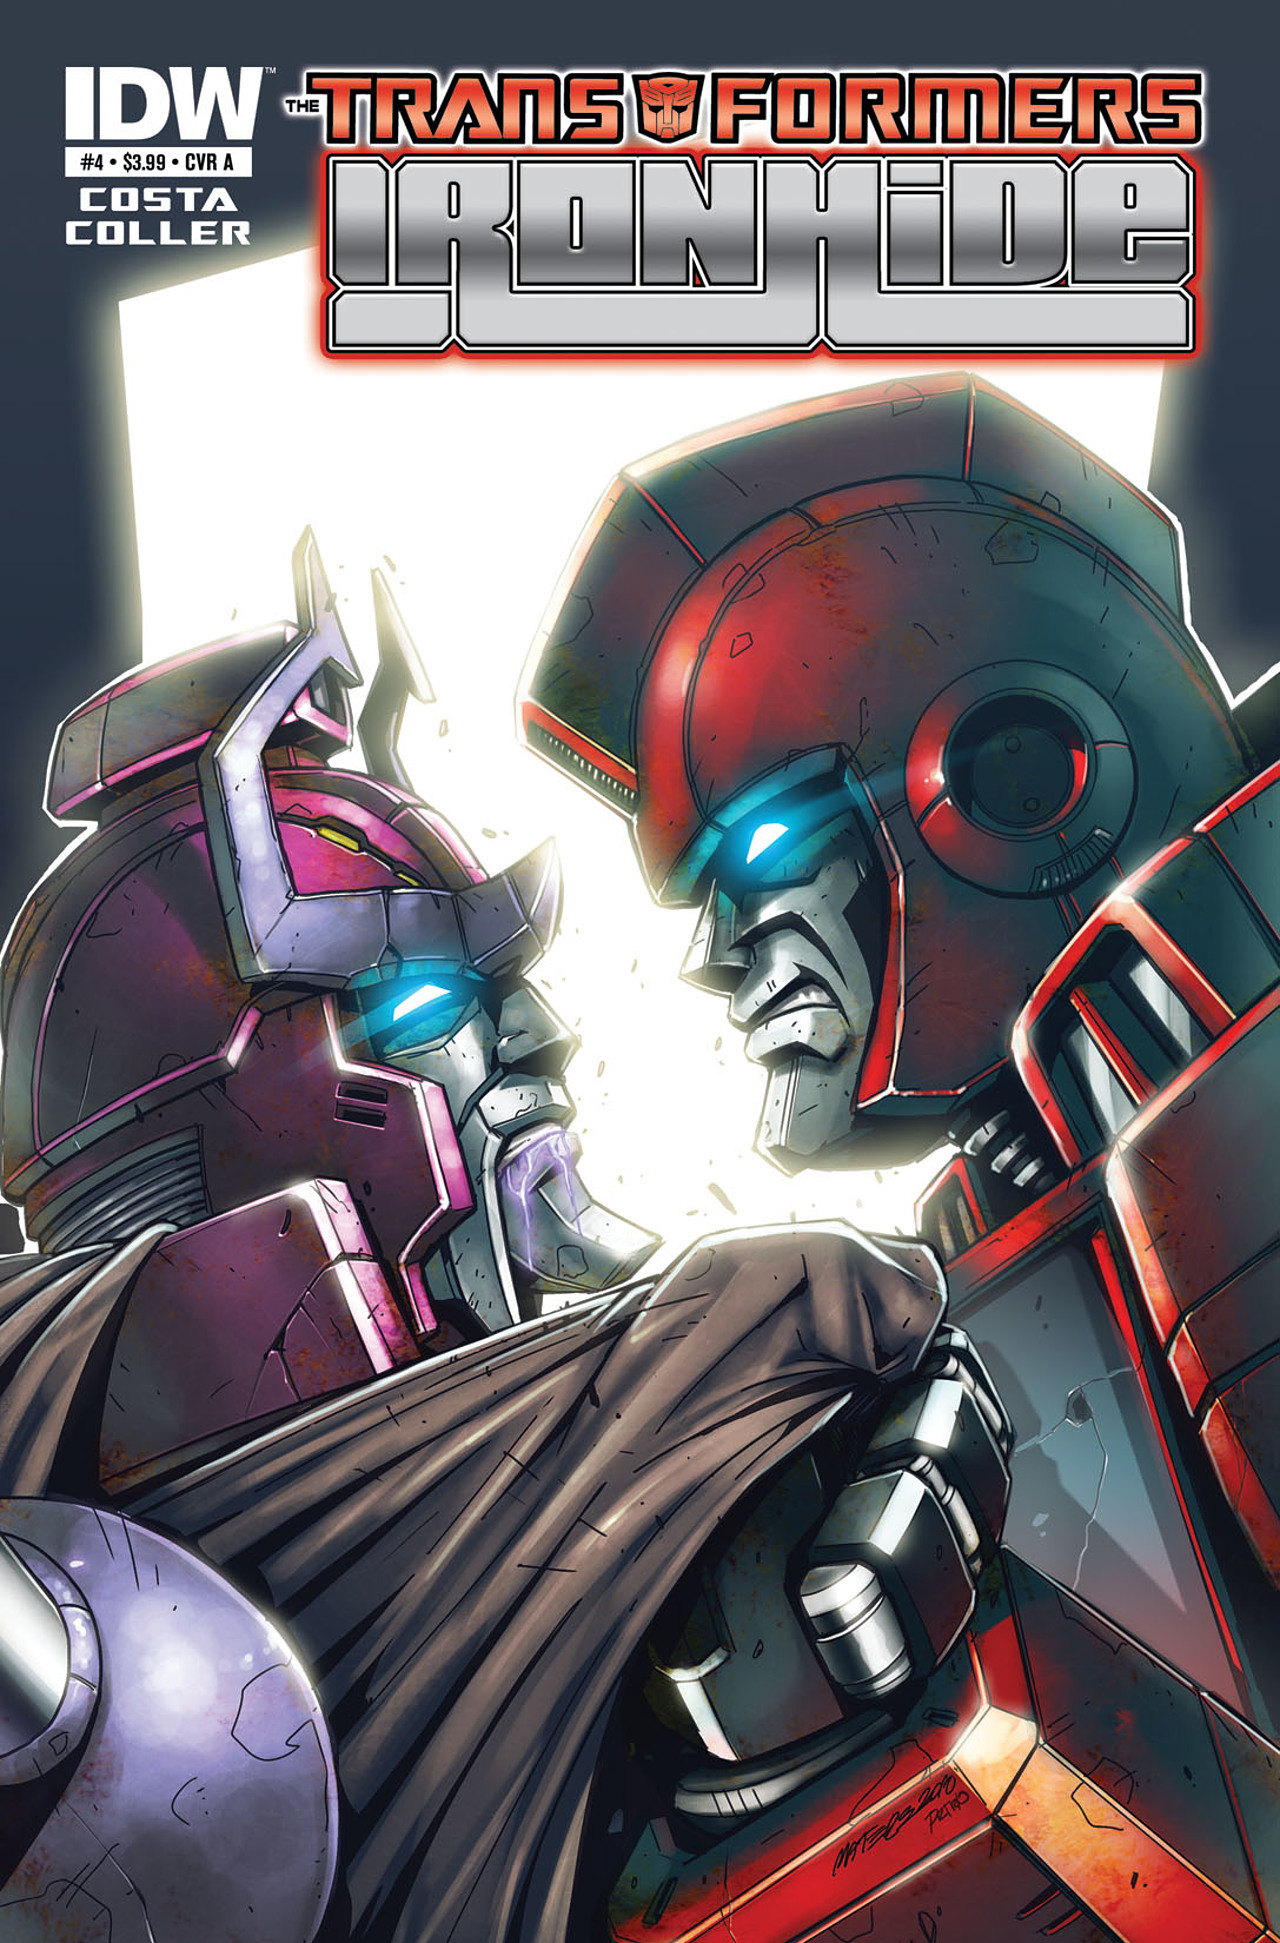 Read online The Transformers: Ironhide comic -  Issue #4 - 1